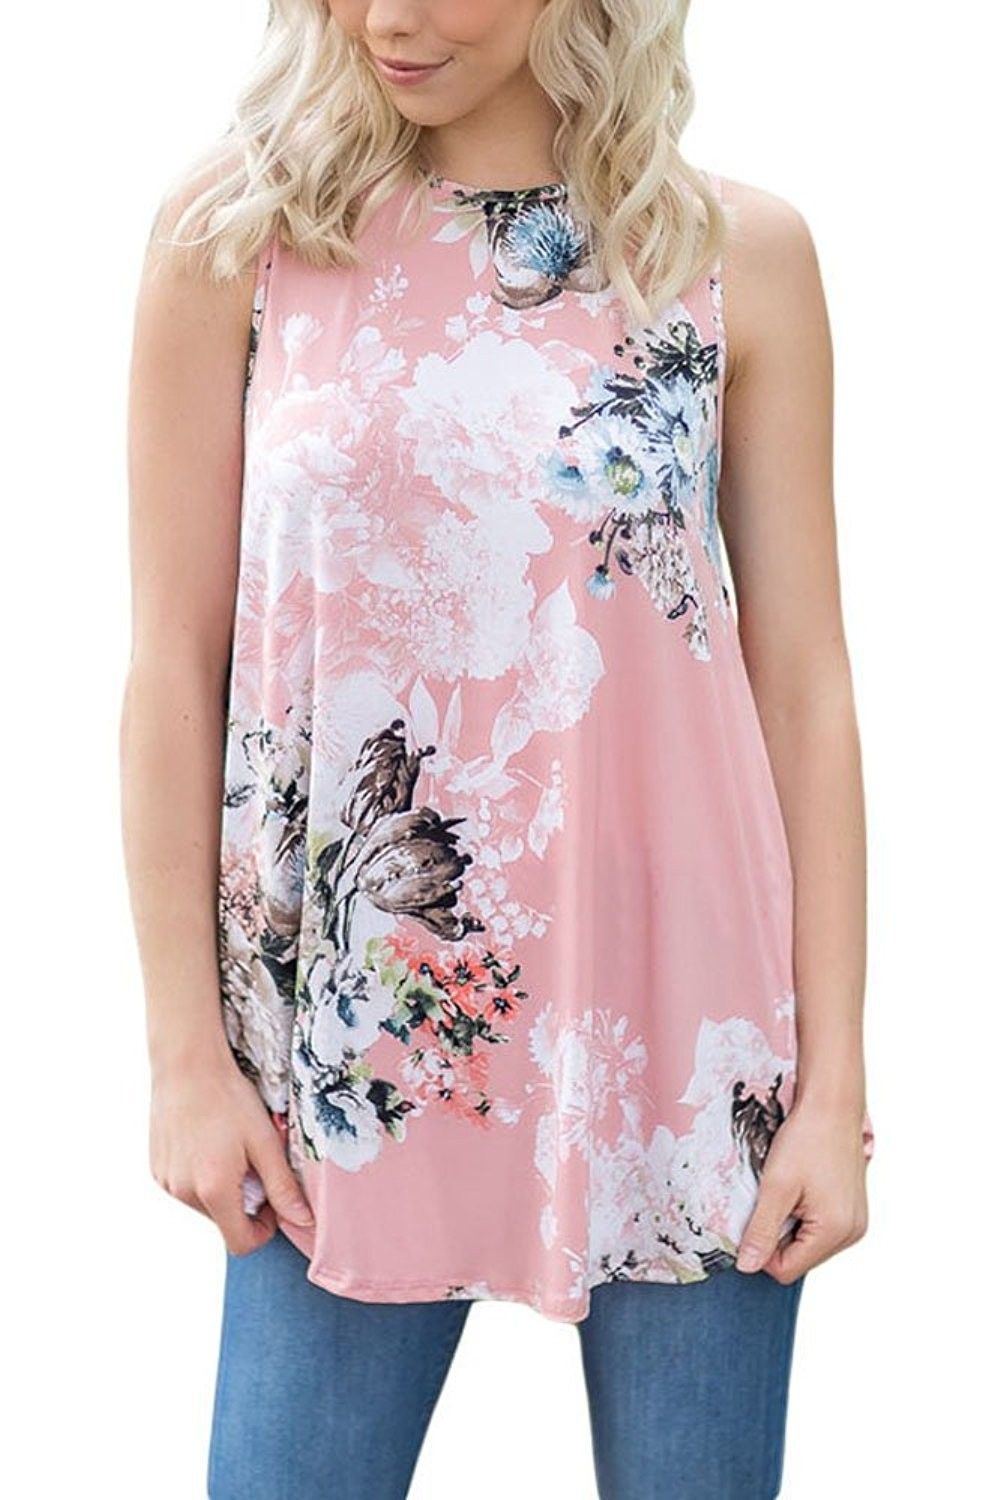 1e25df5a8d2 Womens Summer Casual Floral Print Sleeveless Loose Tank Blouses and Tops -  Pink - CH182M99WD9,Women's Clothing, Tops & Tees, Blouses & Button-Down  Shirts ...